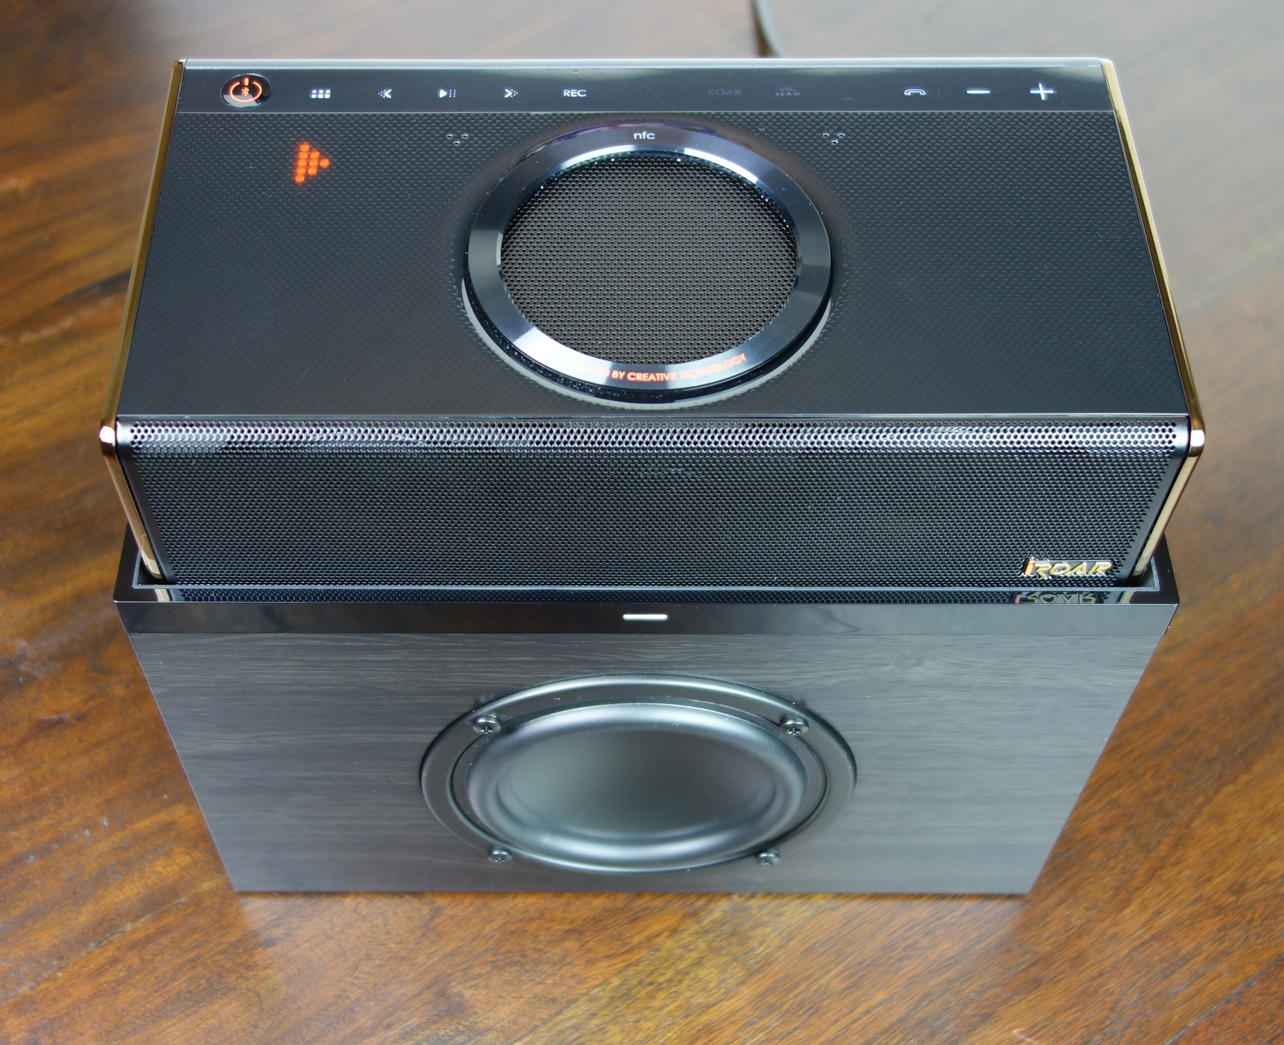 Creative iRoar Rock Docking Subwoofer playing